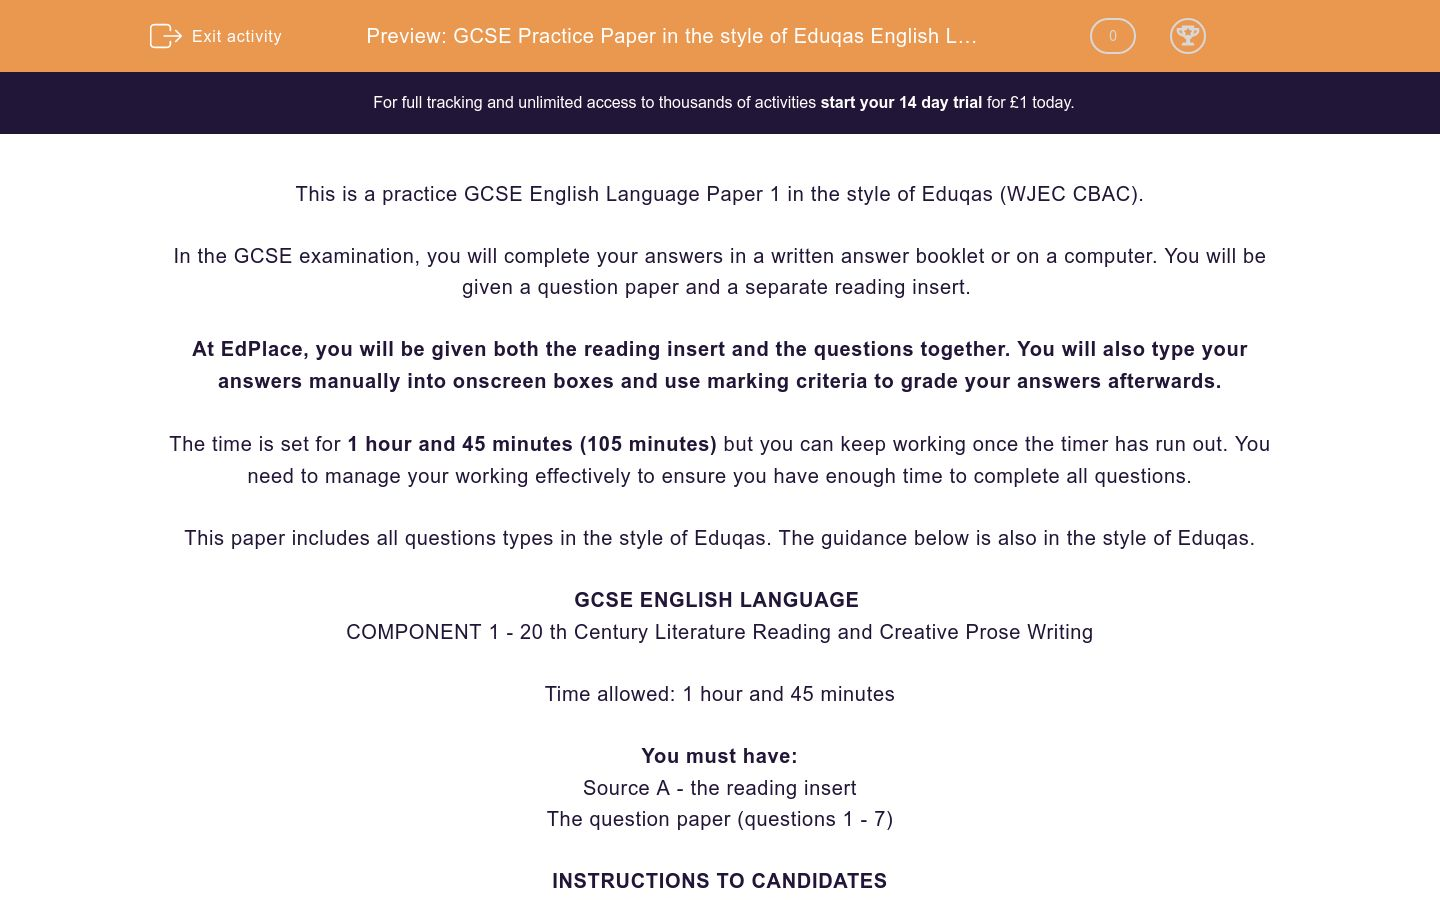 'GCSE Practice Paper in the style of Eduqas English Language Paper 1' worksheet